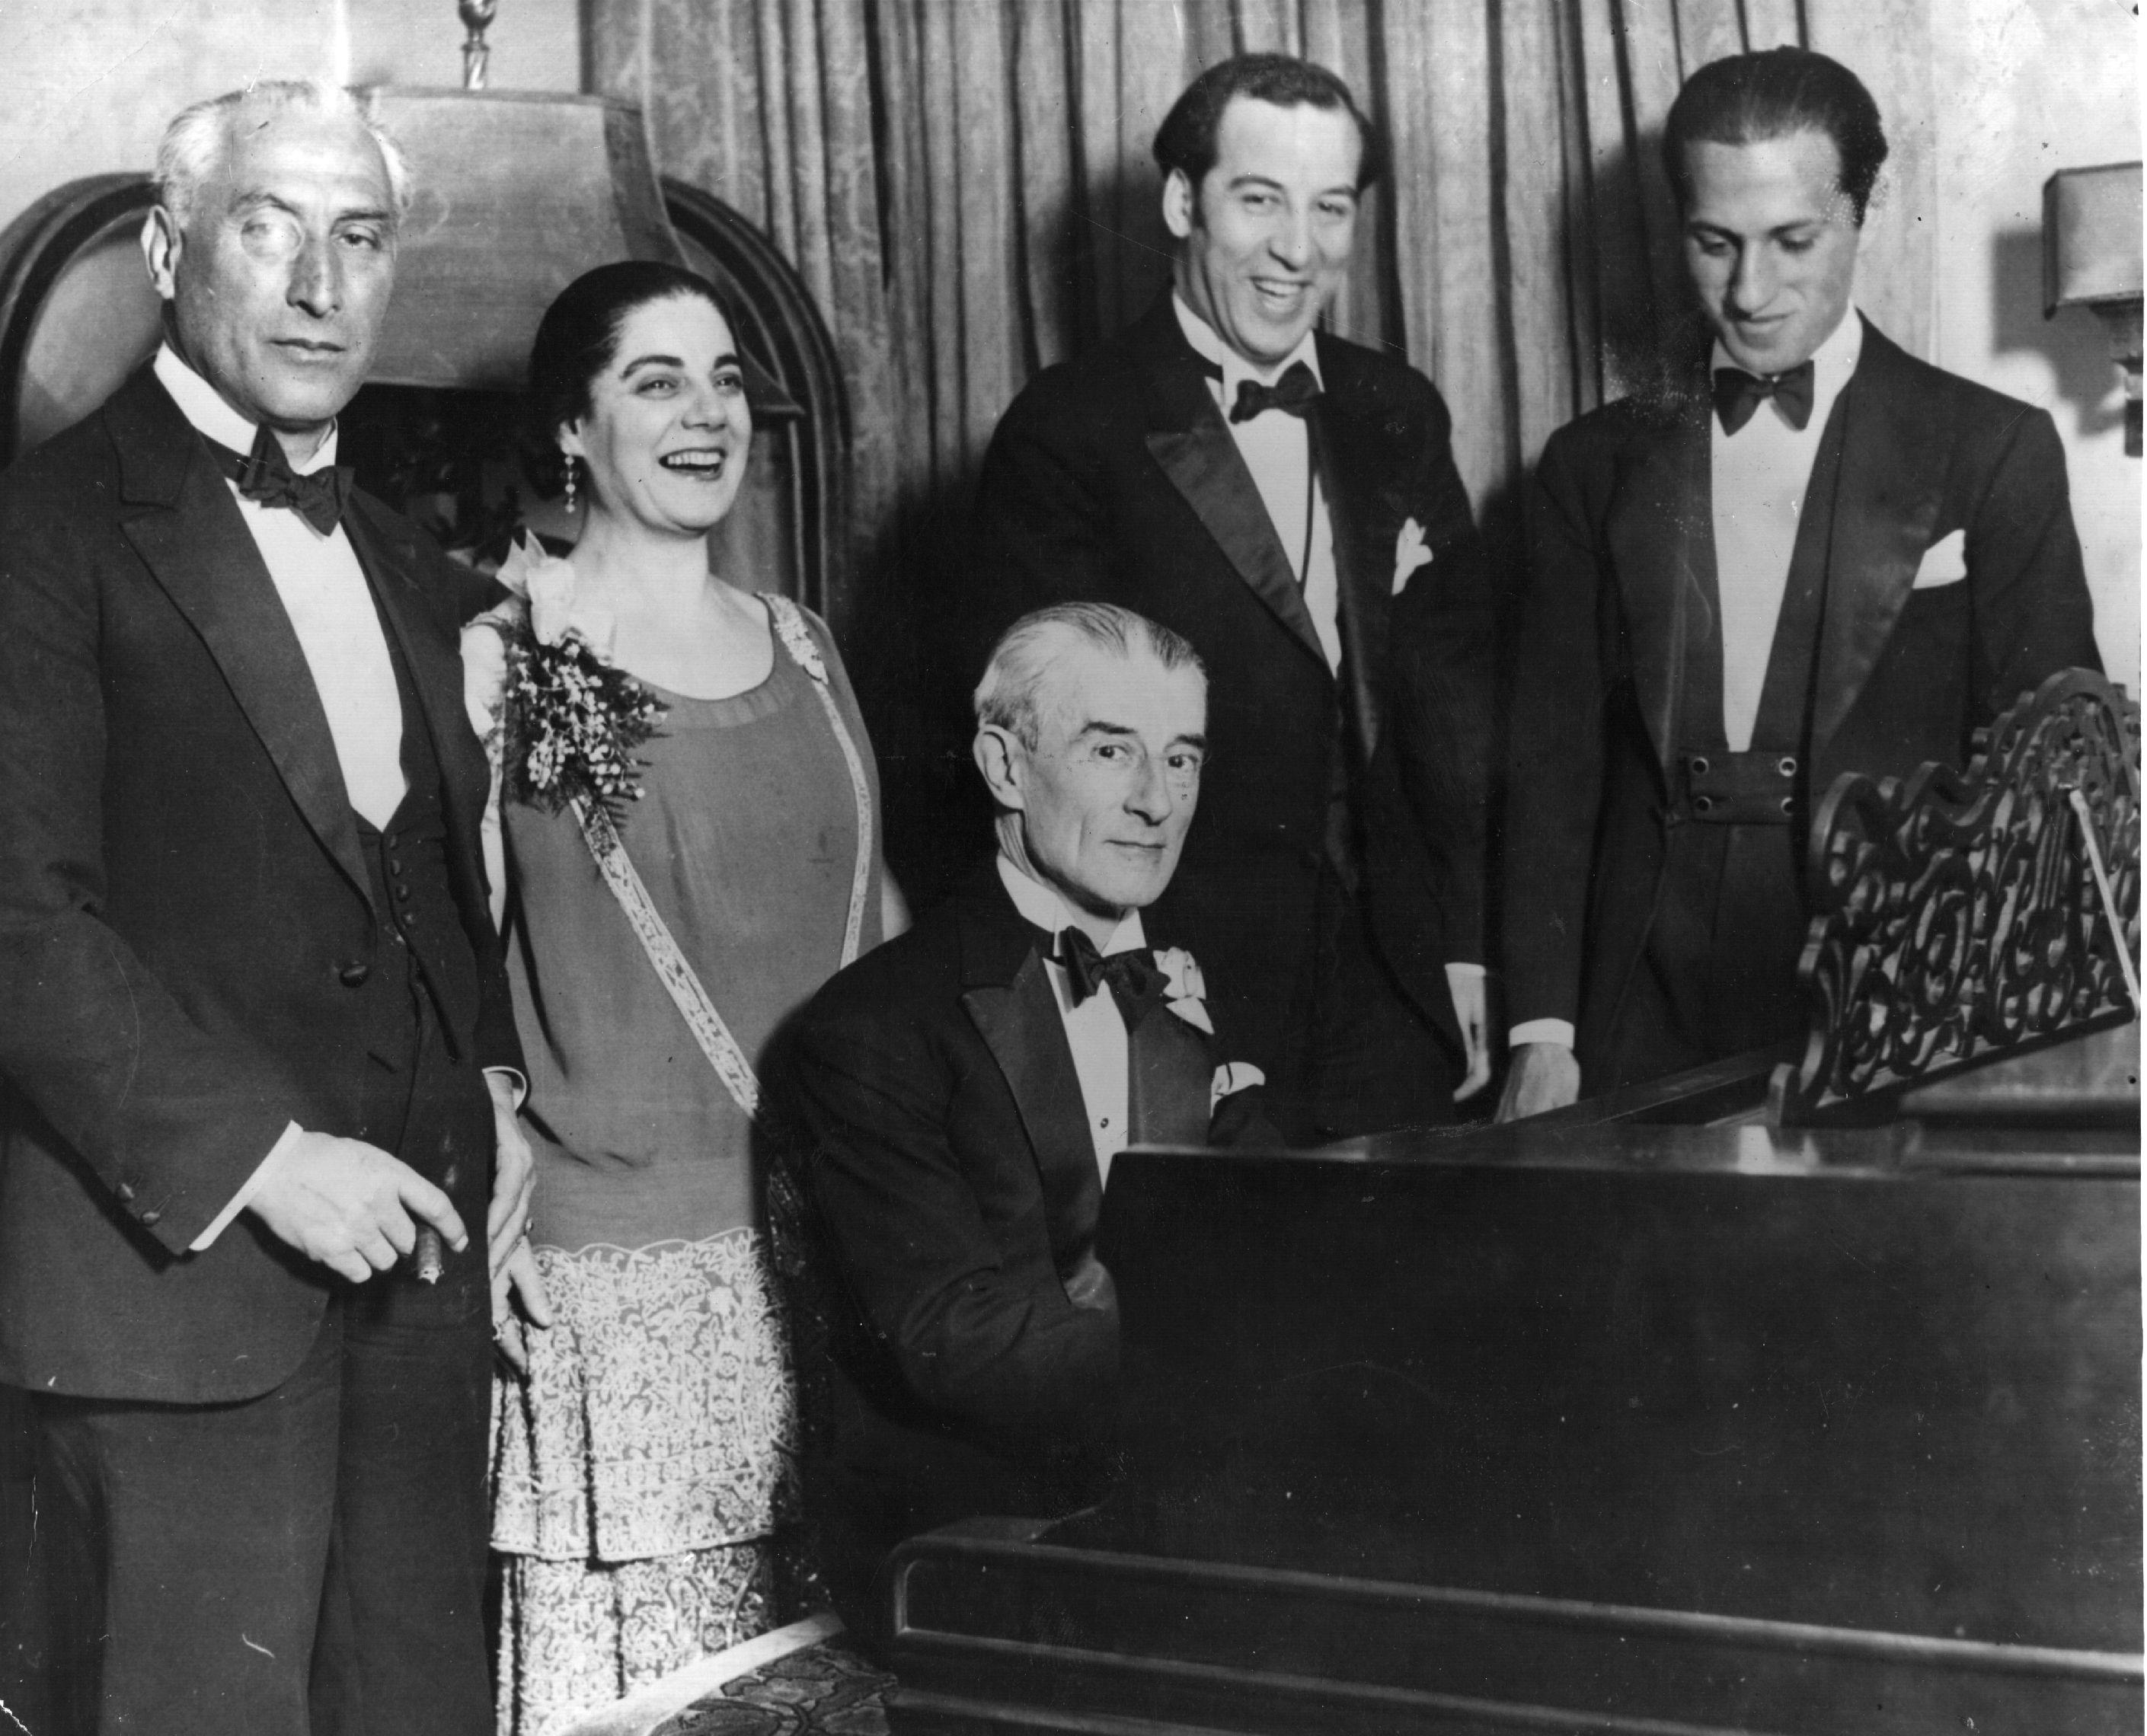 gershwin and ravel